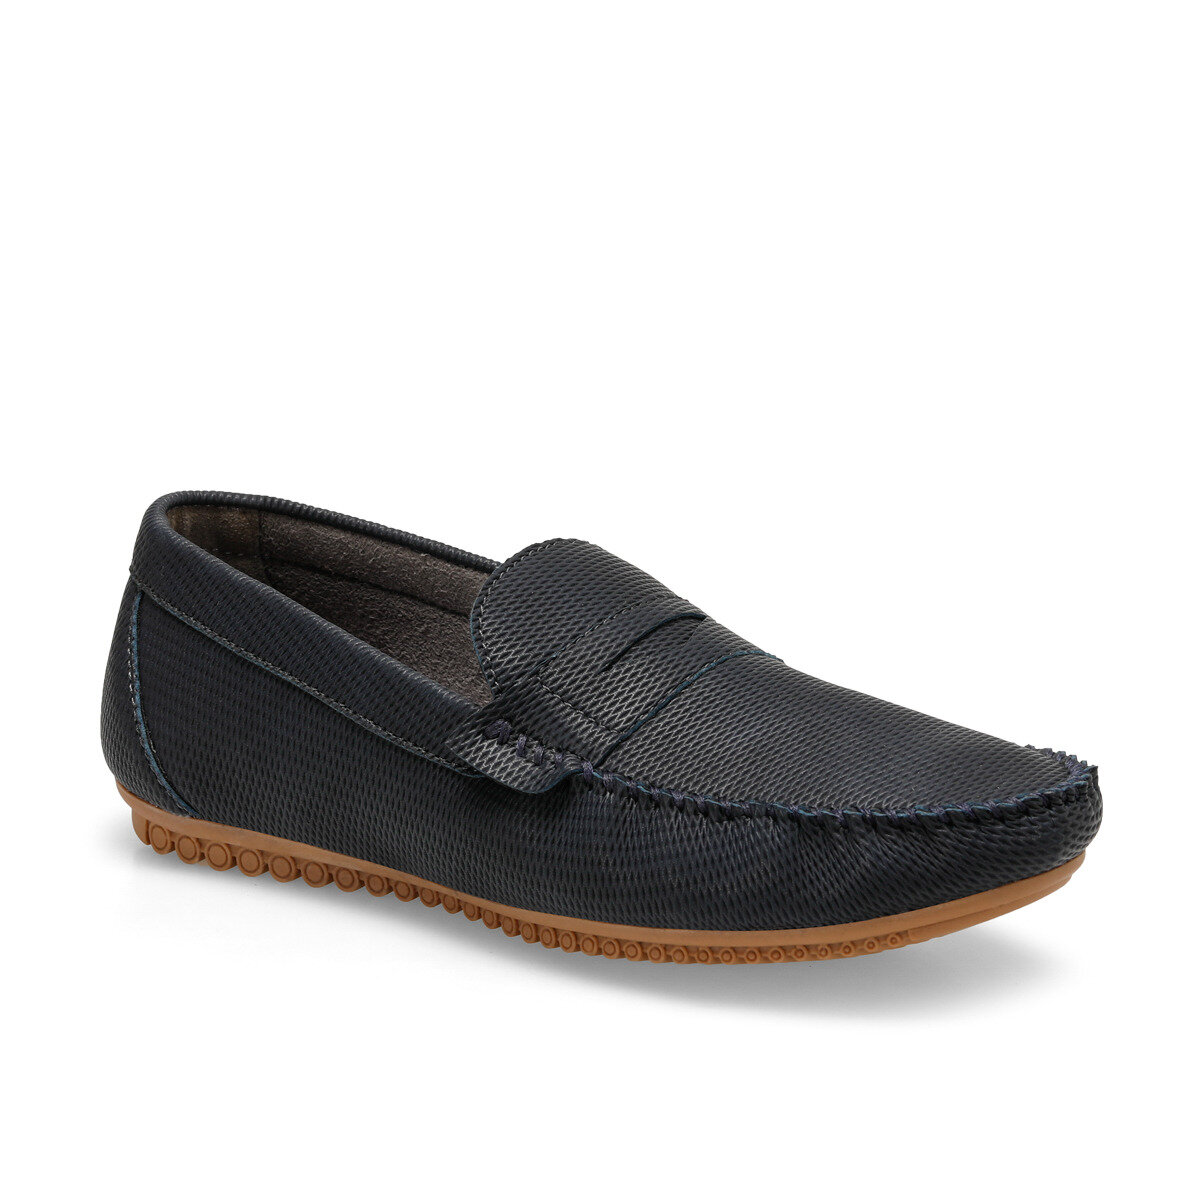 FLO MDL2 C Navy Blue Men 'S Loafer Shoes Panama Club